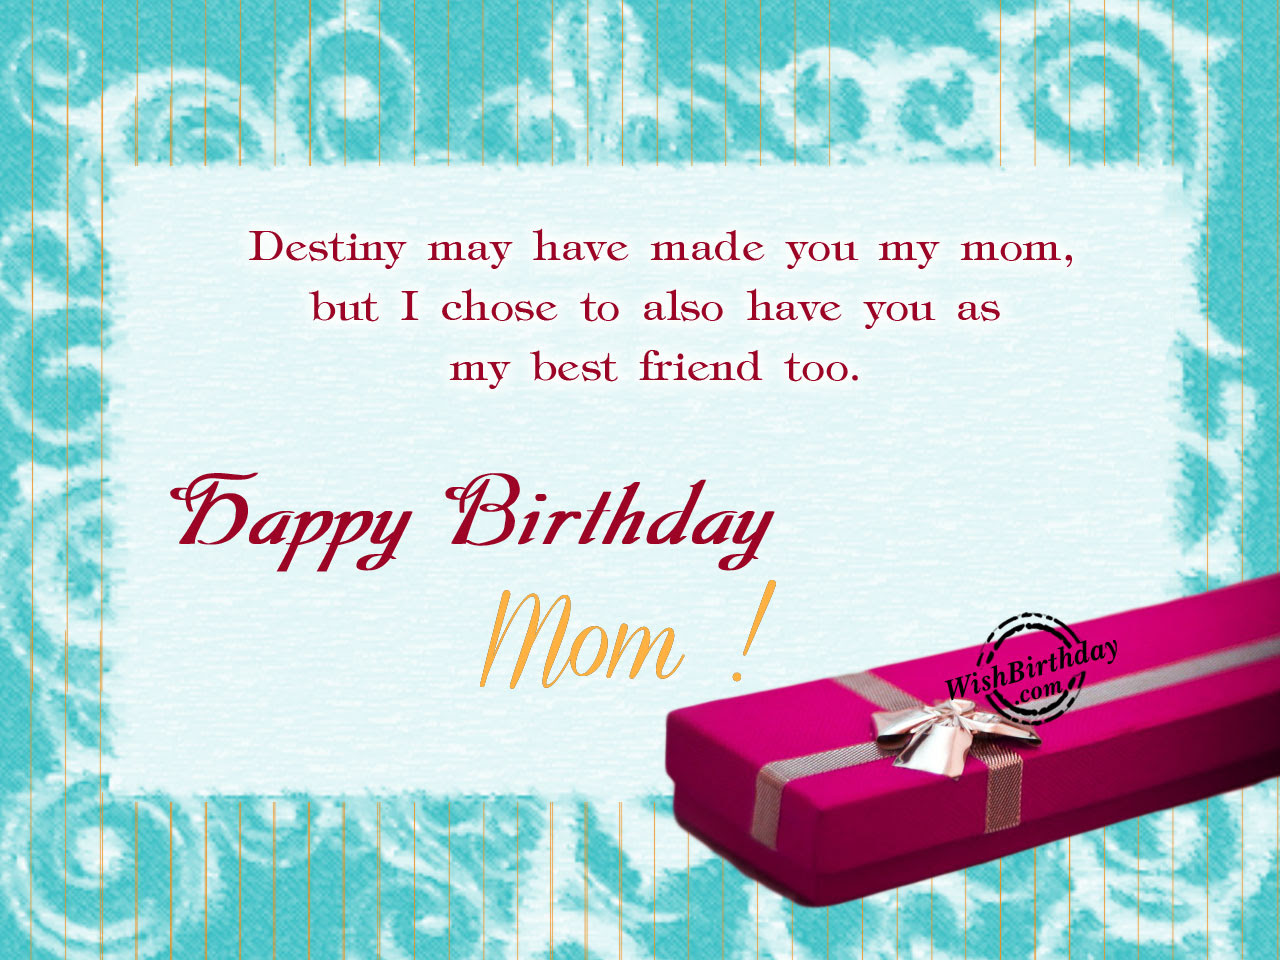 Birthday Wishes For Mother - Birthday Images, Pictures